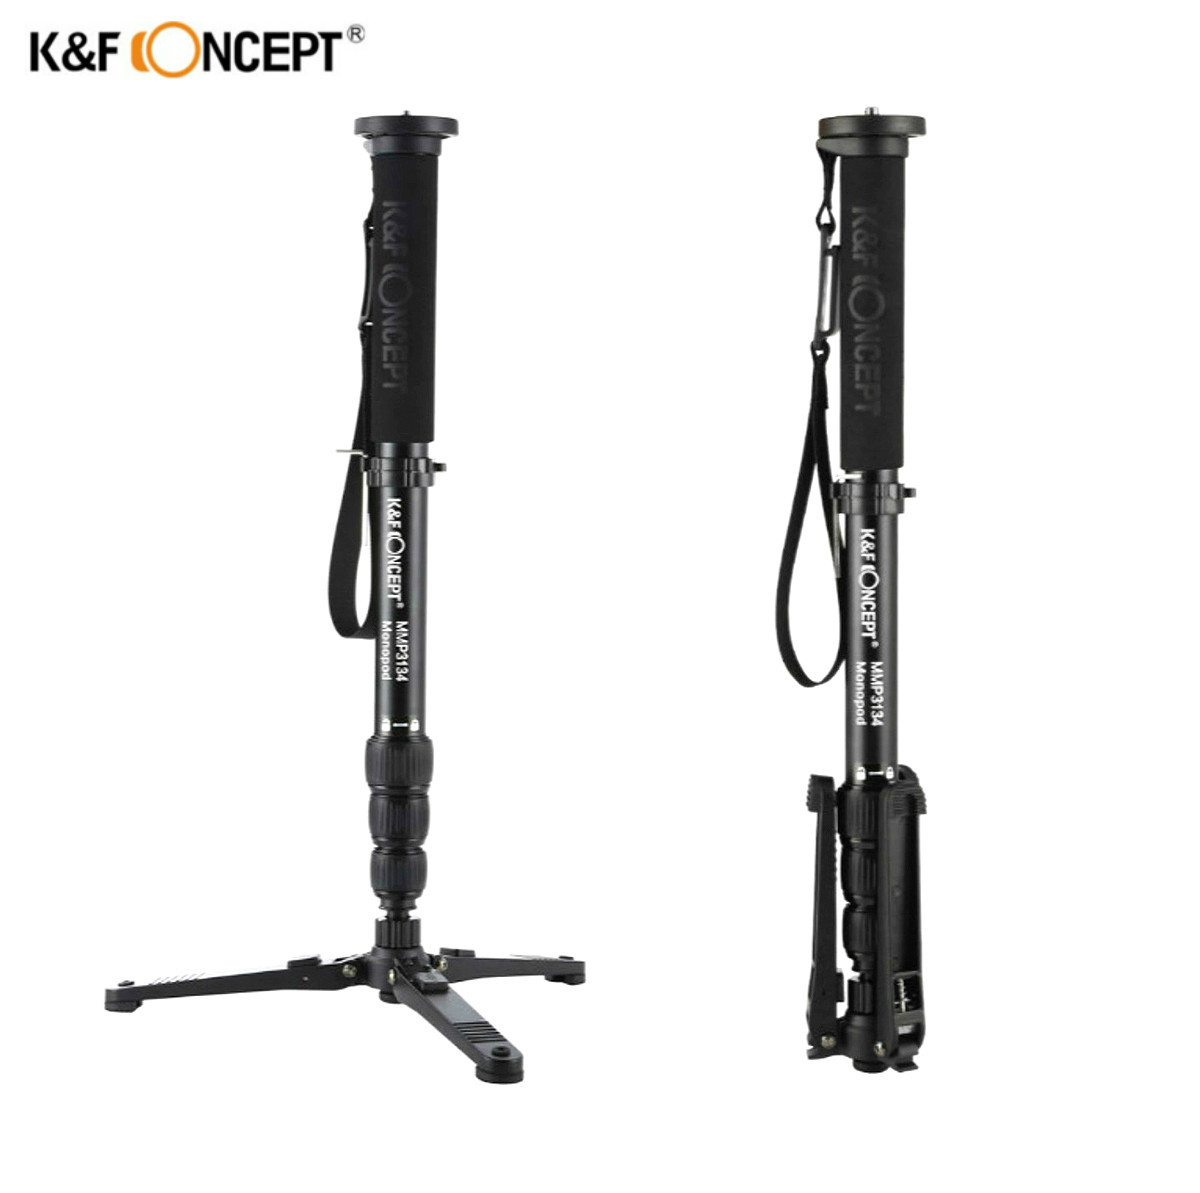 K&F CONCEPT MMP3134 31mm Max Tube Lightweight Portable Aluminum Alloy Travel Photo Video Monopod Portable Camera Tripod Stand gelatinase mmp 2 mmp 9 and aminopeptidase n cd13 in breast carcinoma